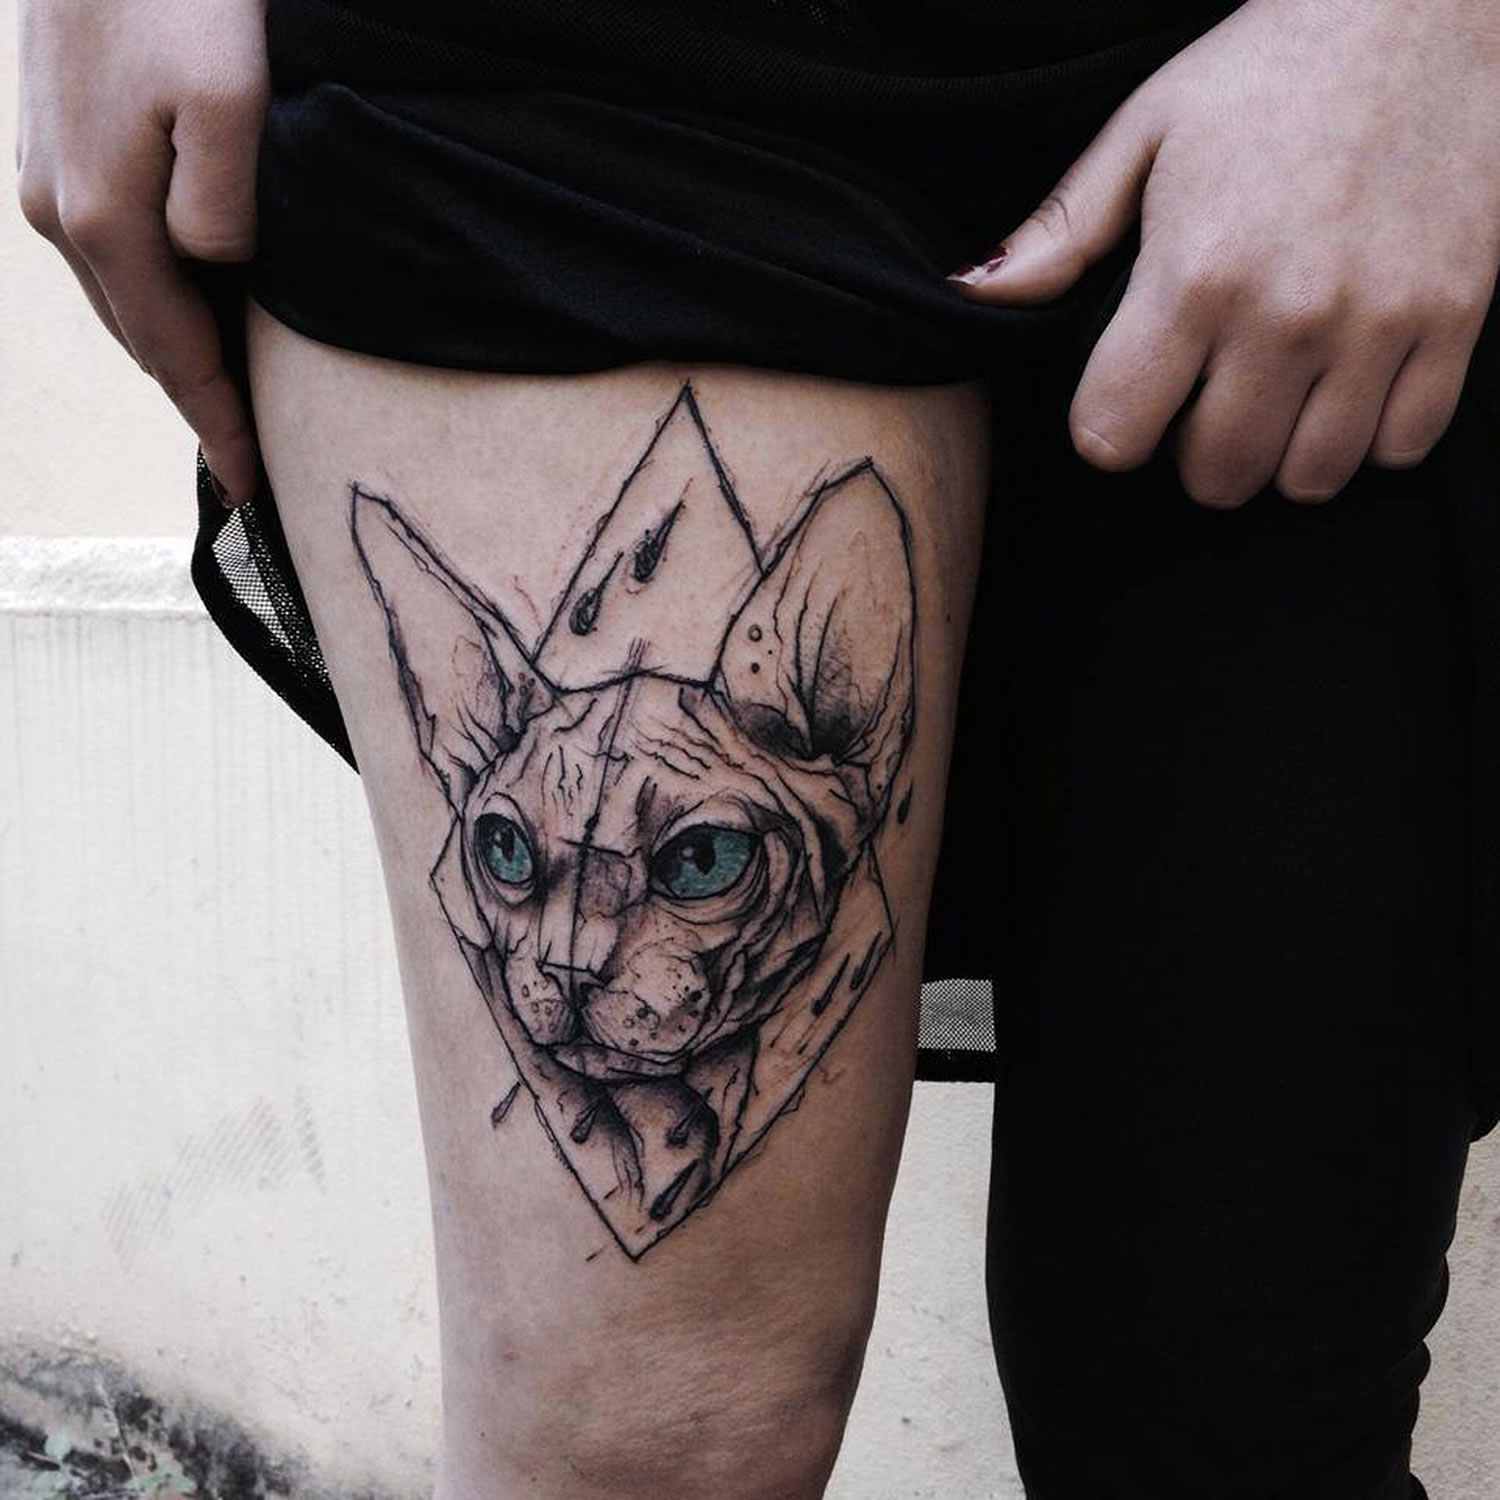 sphynx cat tattoo by Kamil Mokot